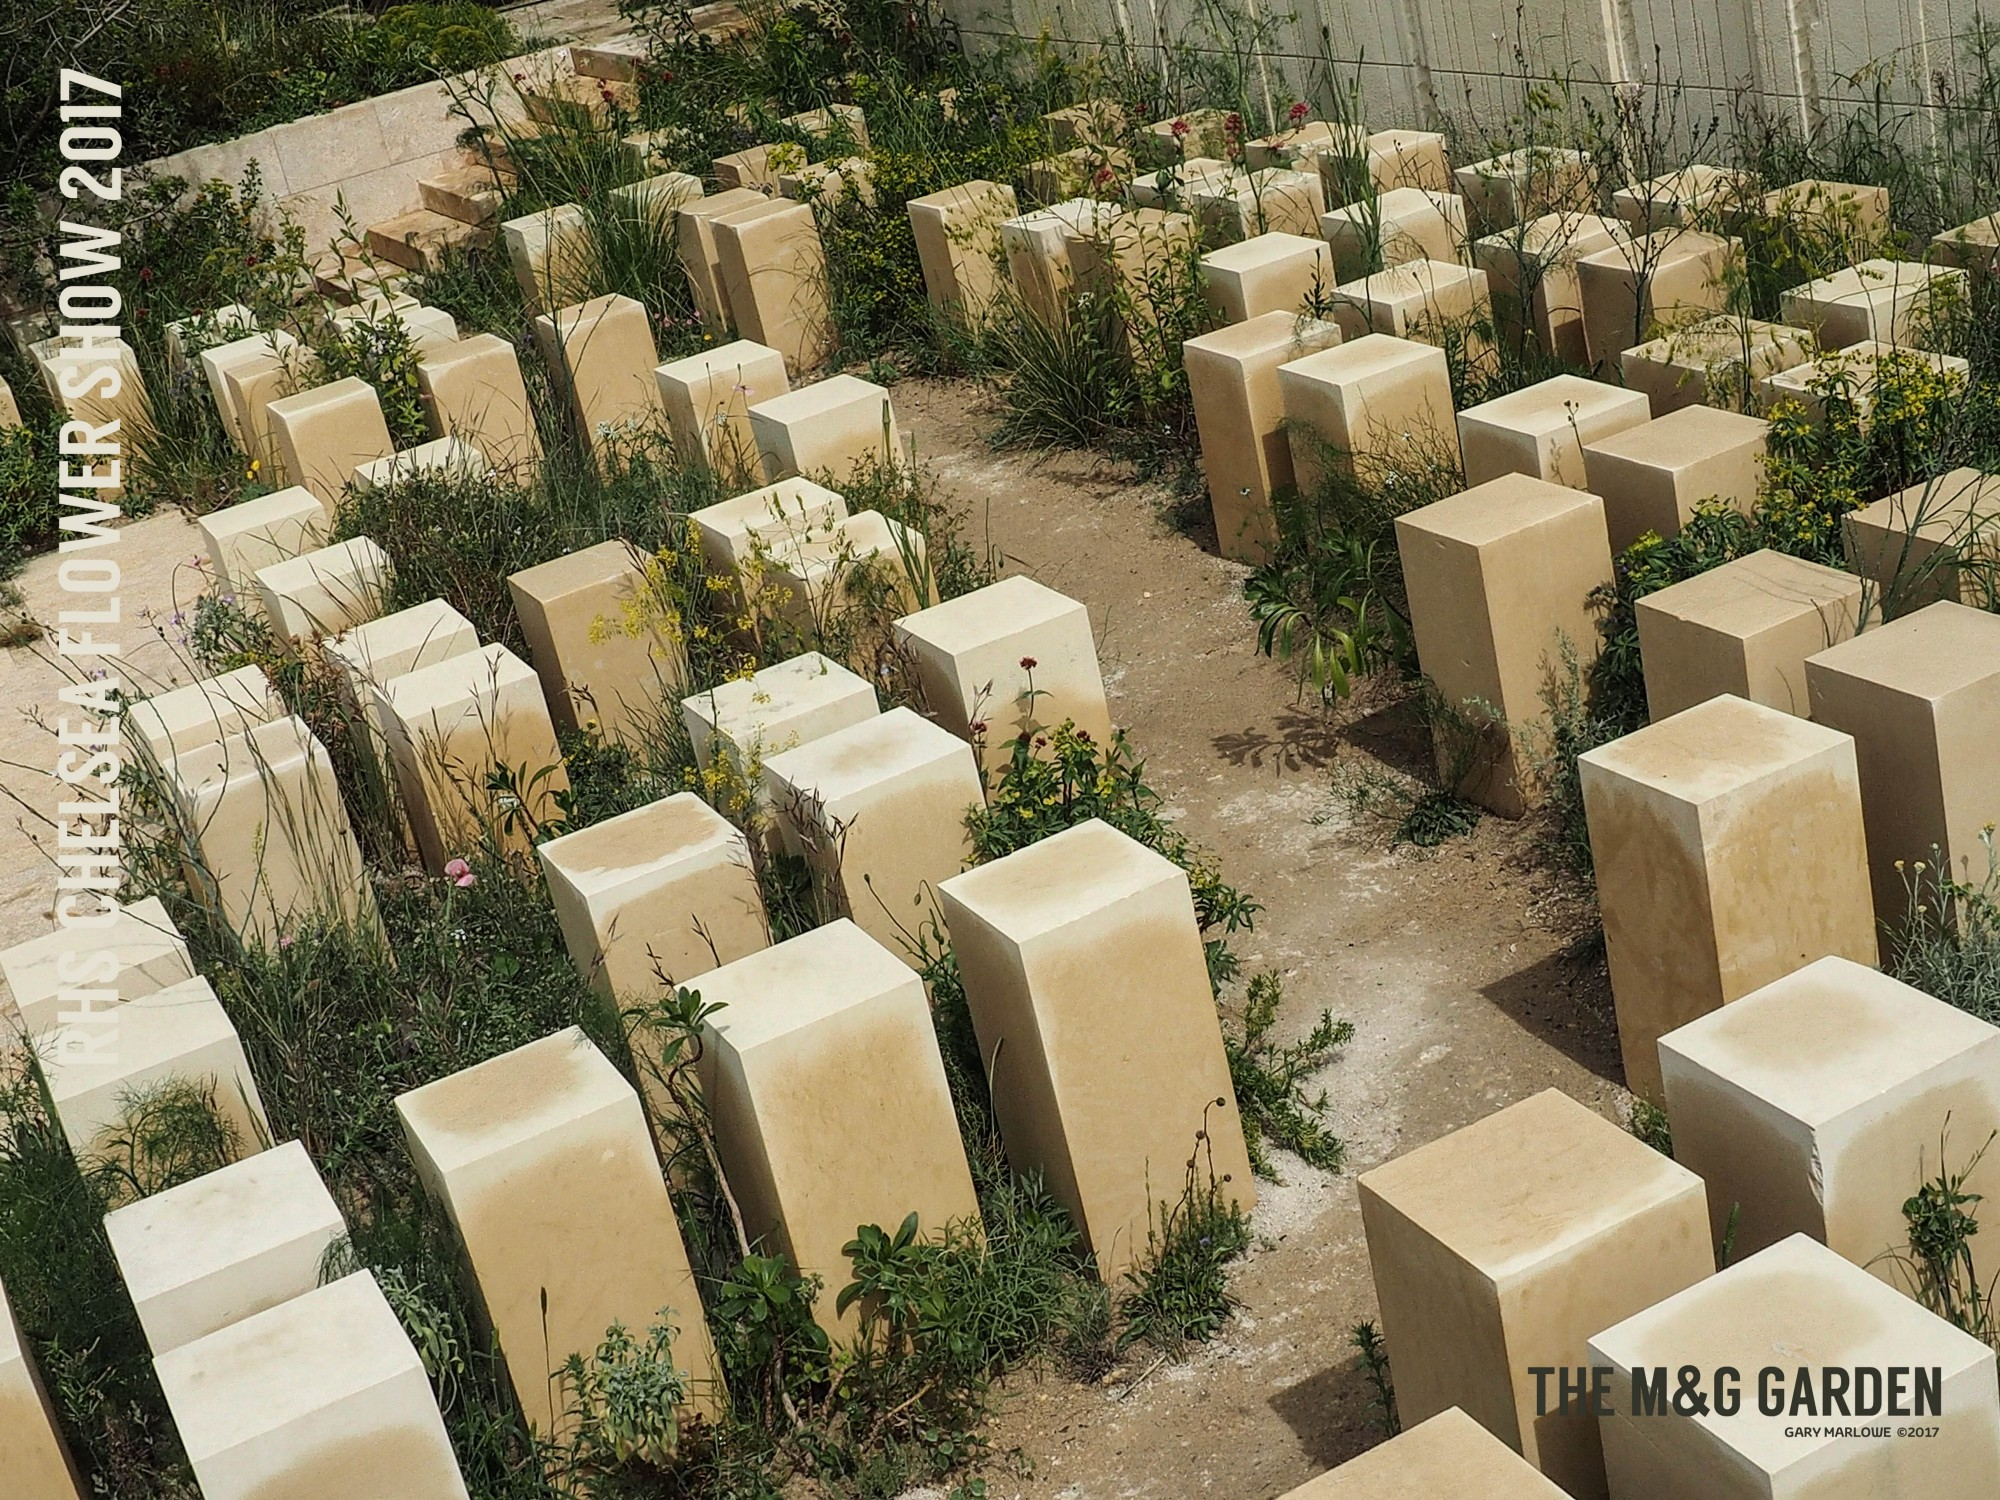 shot! the m&g garden at the 2017 rhs chelsea flower show